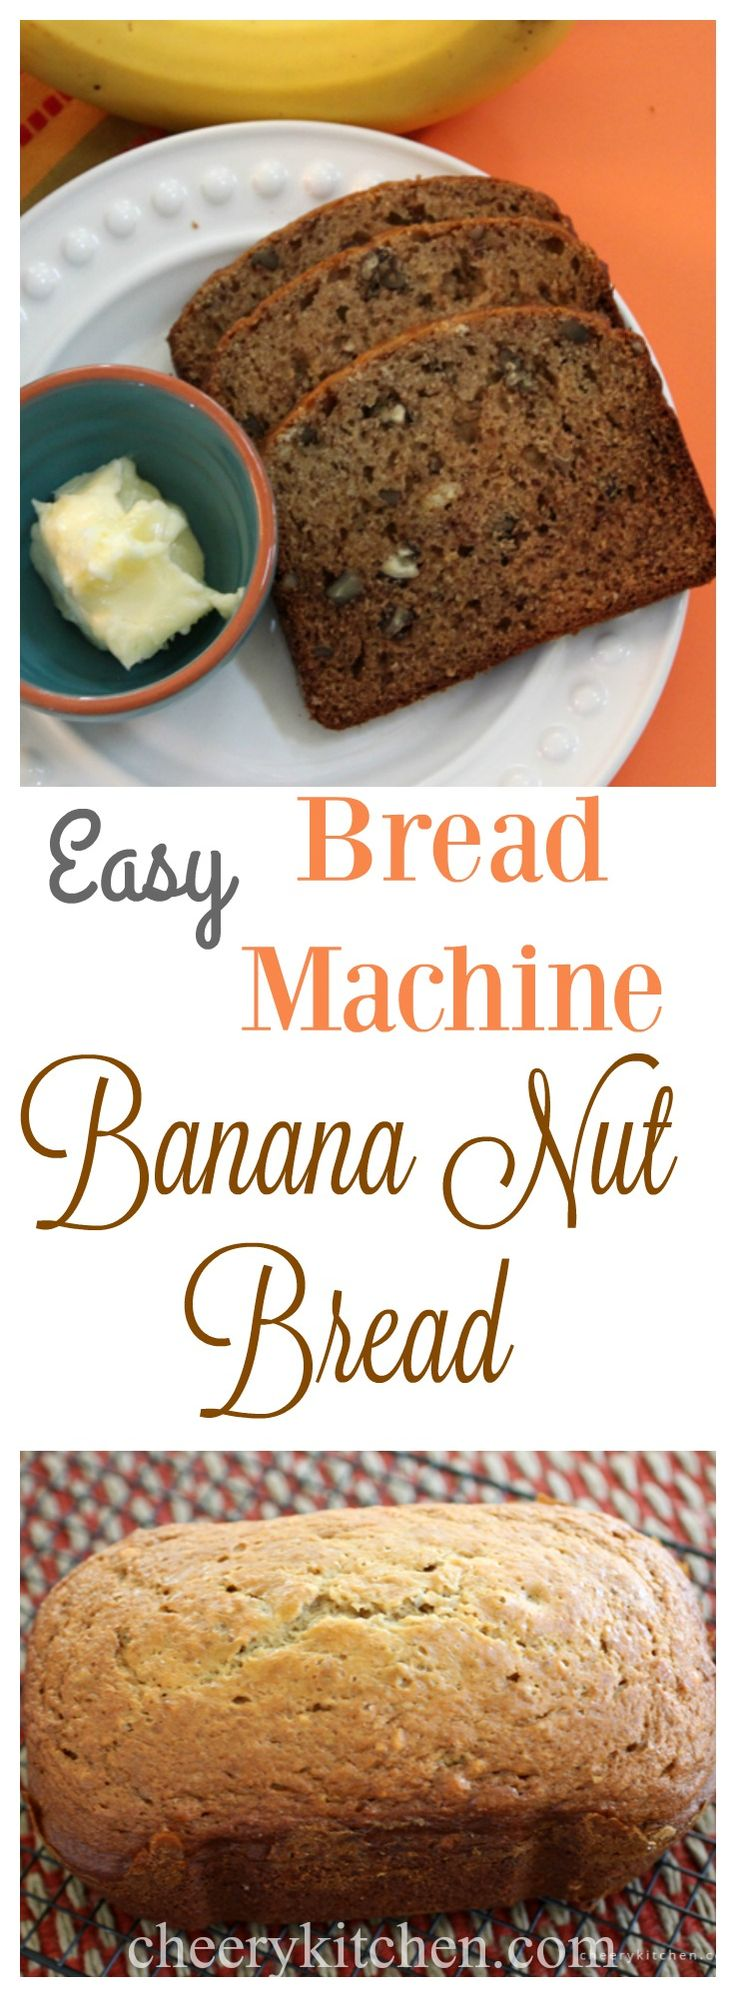 Easy Bread Machine Banana Nut Bread | cheerykitchen.com Calling all banana nut bread lovers.  If you can push a button you're going to love this one.  Ready 1-2-3 moist and absolutely delicious!!!